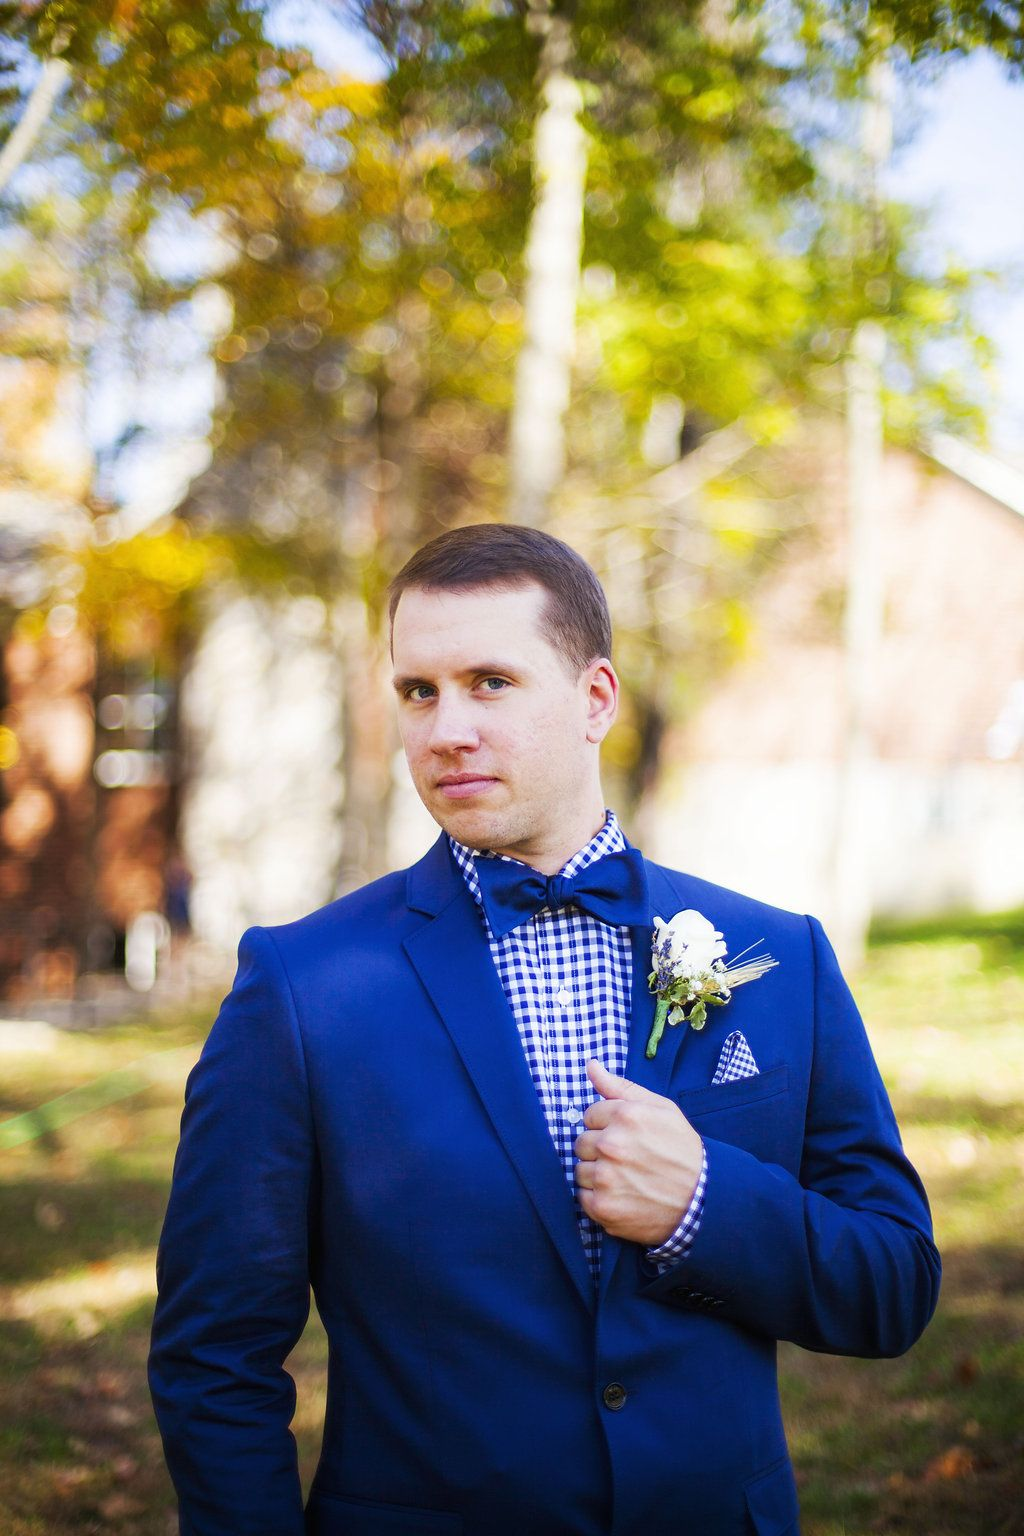 Fall Favorites Wedding | Royal blue suit, Wedding and Weddings